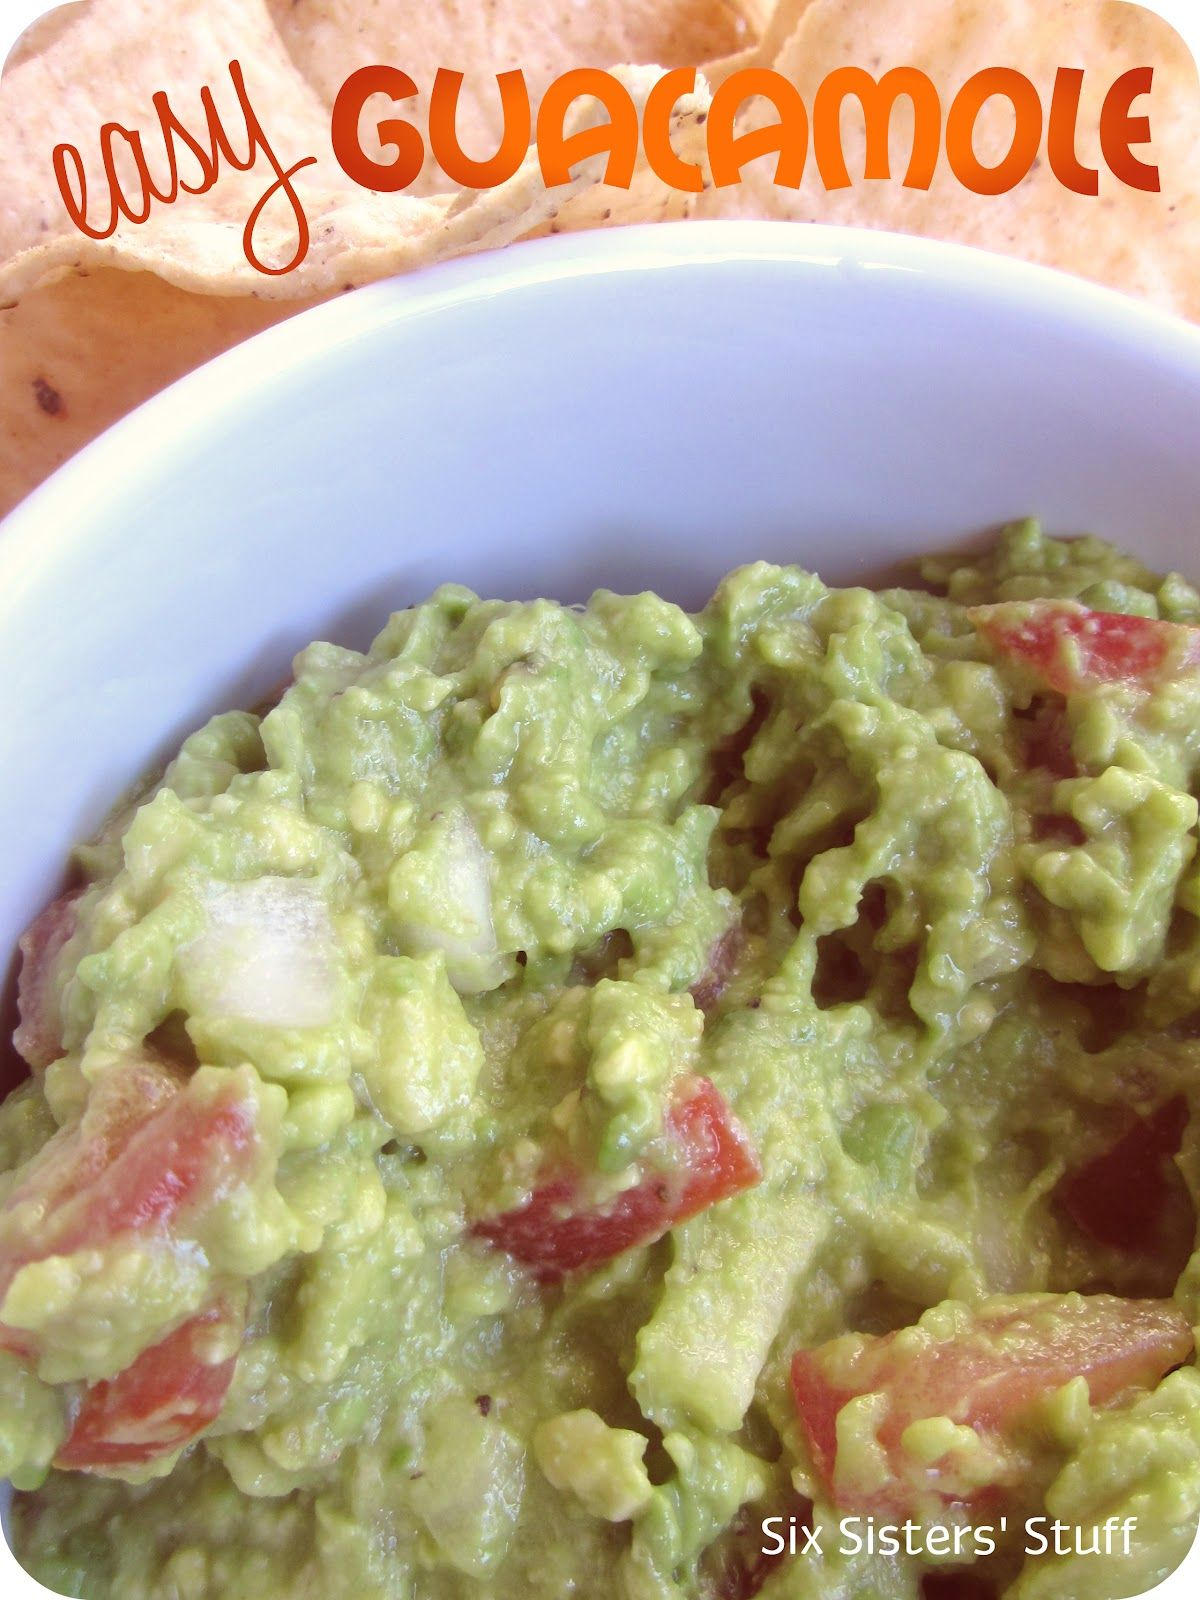 Easy Guacamole from SixSistersStuff.com.  So much cheaper and more delicious than anything you buy from the store! #recipes #guacamole